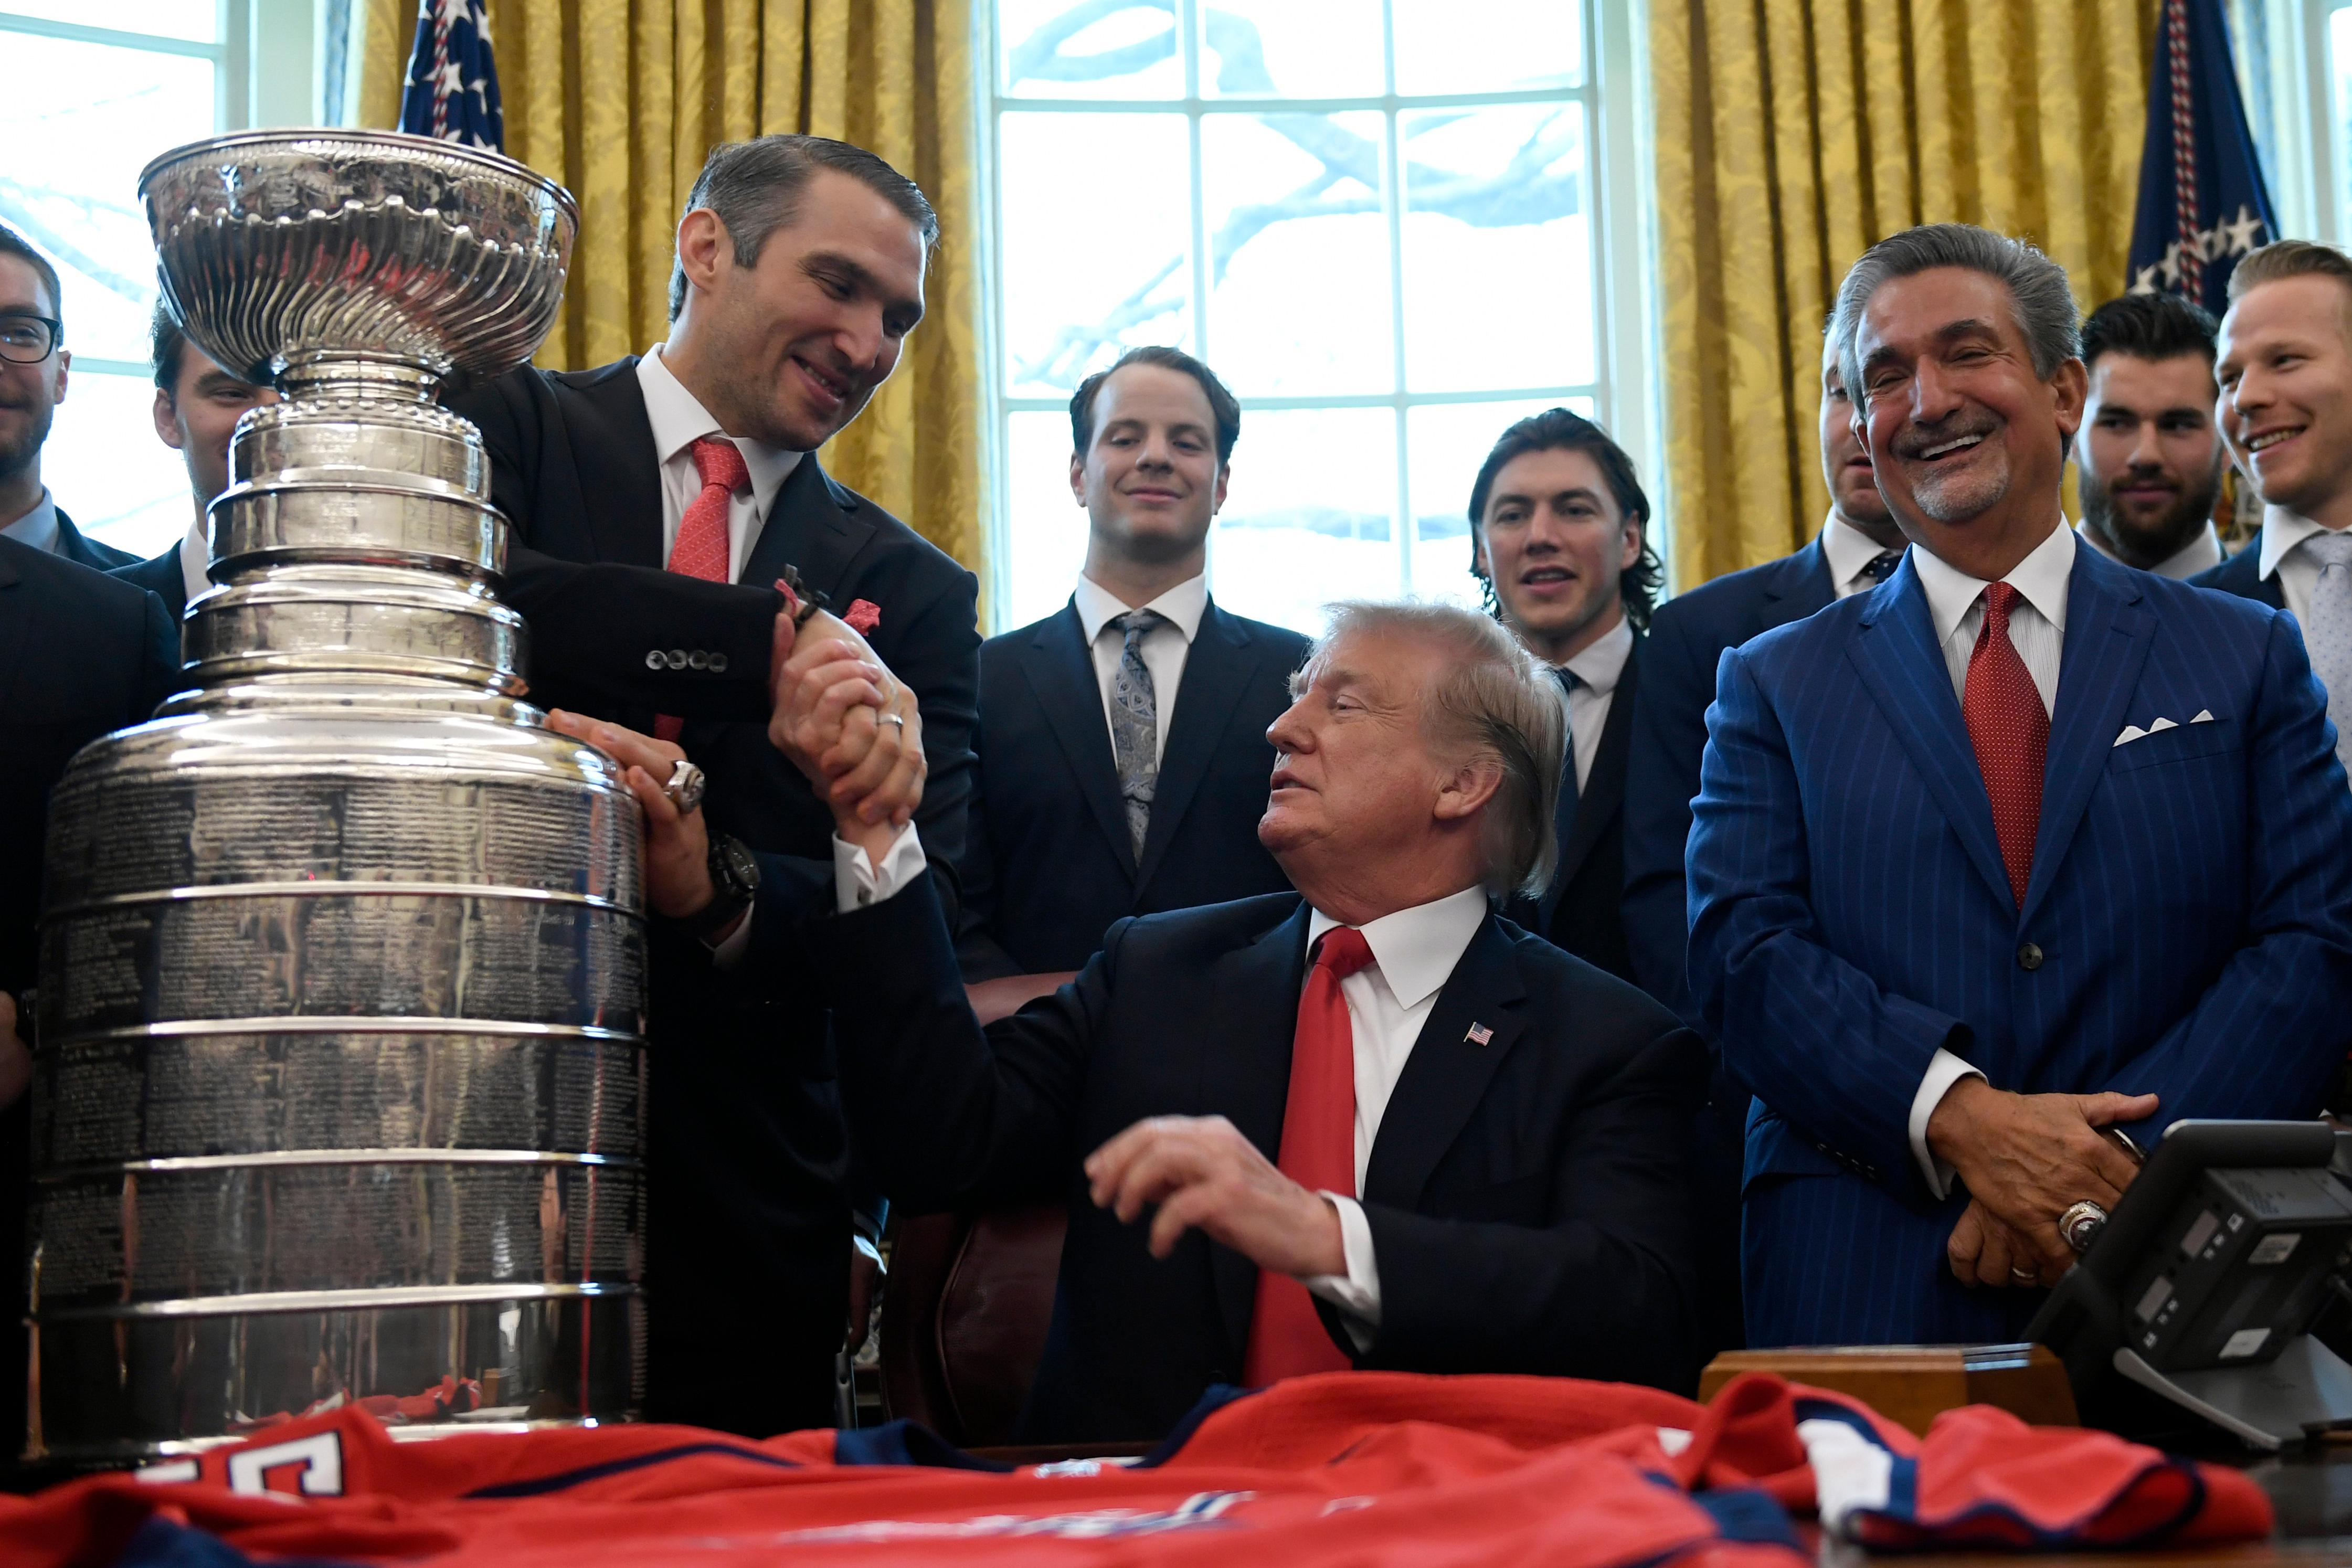 President Donald Trump, center, shakes hands with Alex Ovechkin, second from left, the captain and MVP of the 2018 Stanley Cup Champion Washington Capitals hockey team, during a visit to the Oval Office of the White House in Washington, Monday, March 25, 2019. Capitals owner Ted Leonsis, third from right, and teammates John Carlson, second from left, and T.J. Oshie, fourth from left, listen (AP Photo/Susan Walsh)